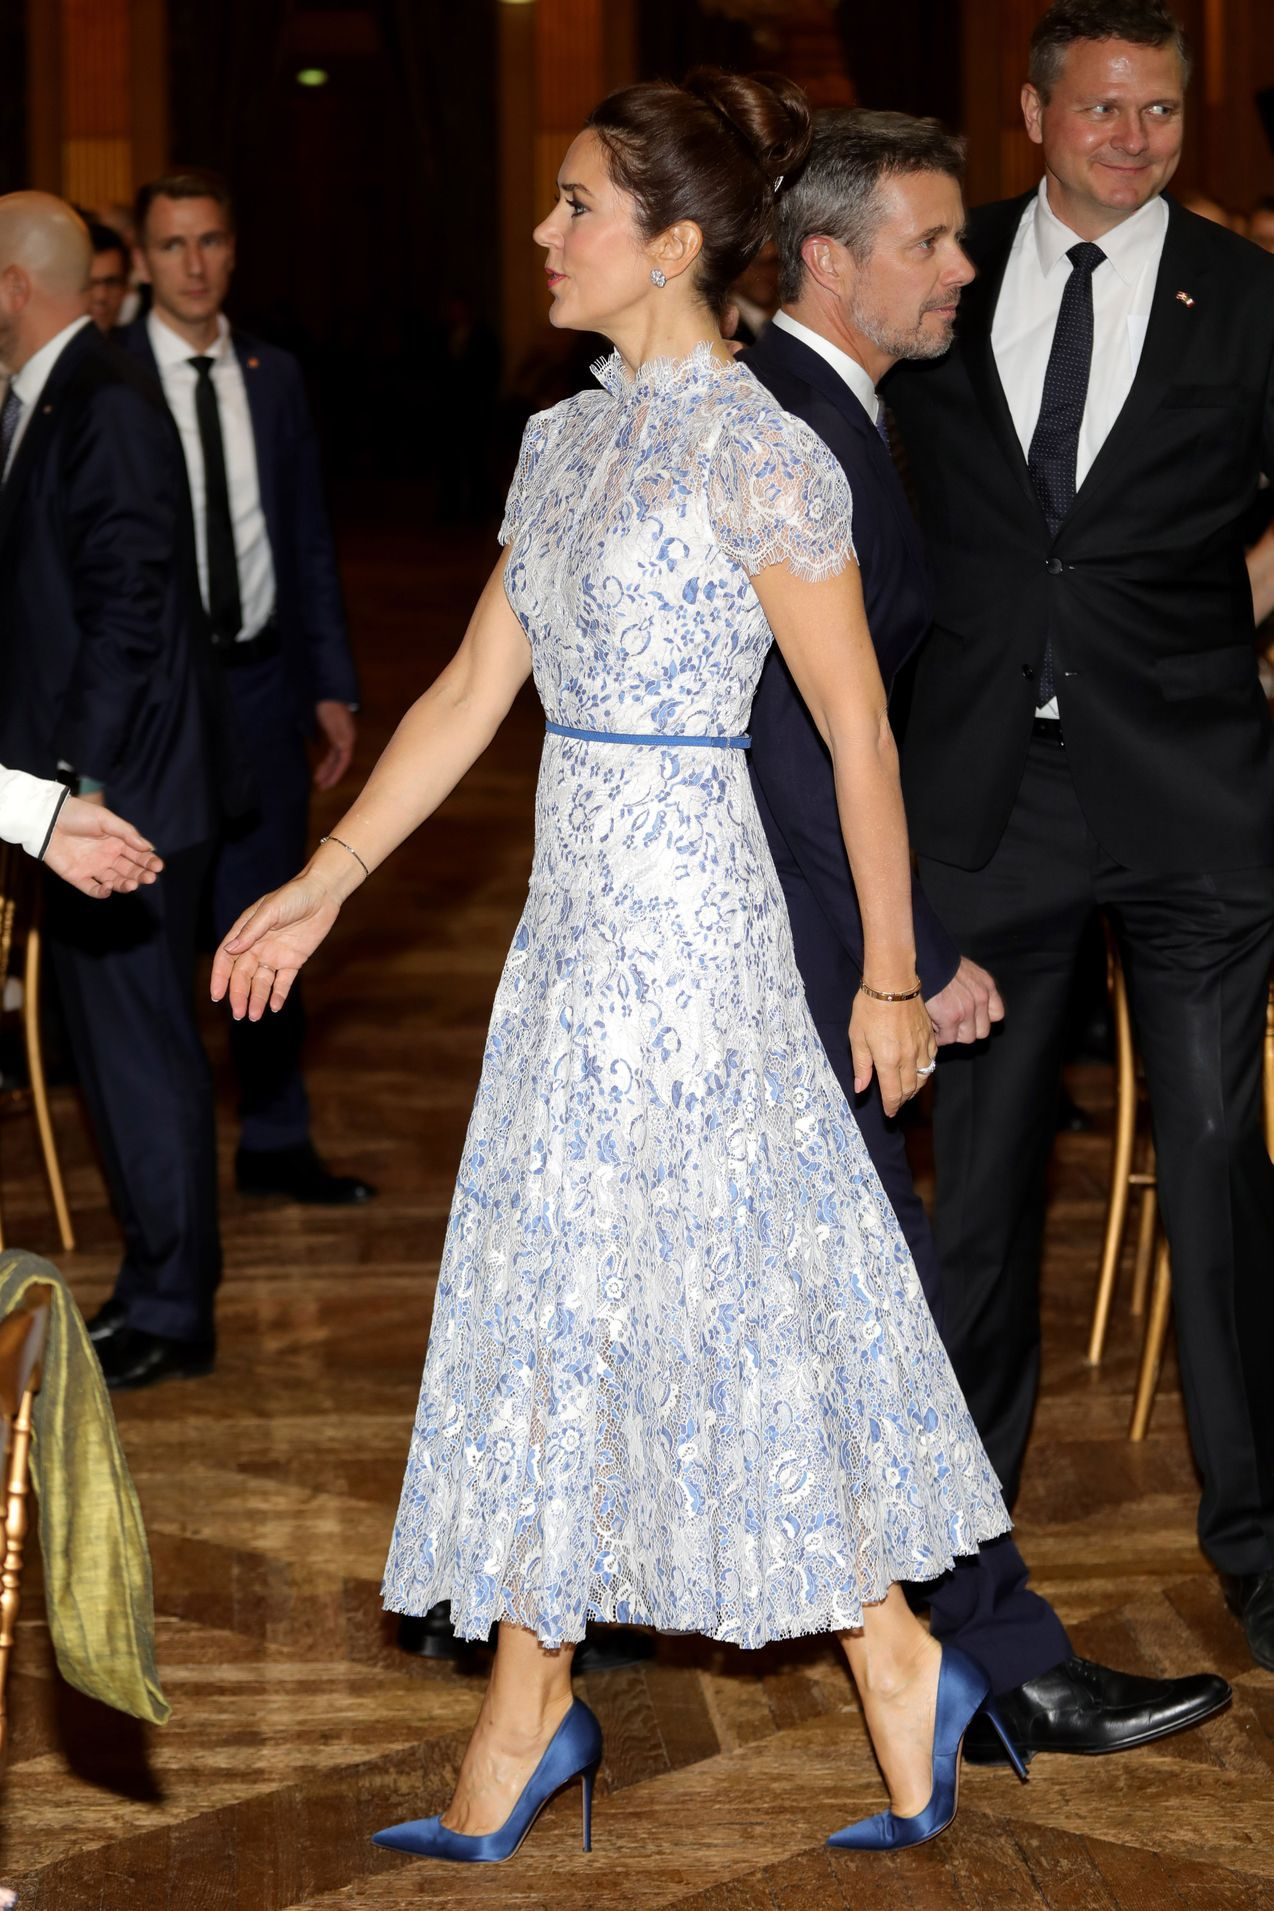 Princess Mary In Paris For Day Two Of Royal Tour With Prince Frederik 9honey Royal Wedding Dress Denmark Fashion Royal Dresses [ jpg ]